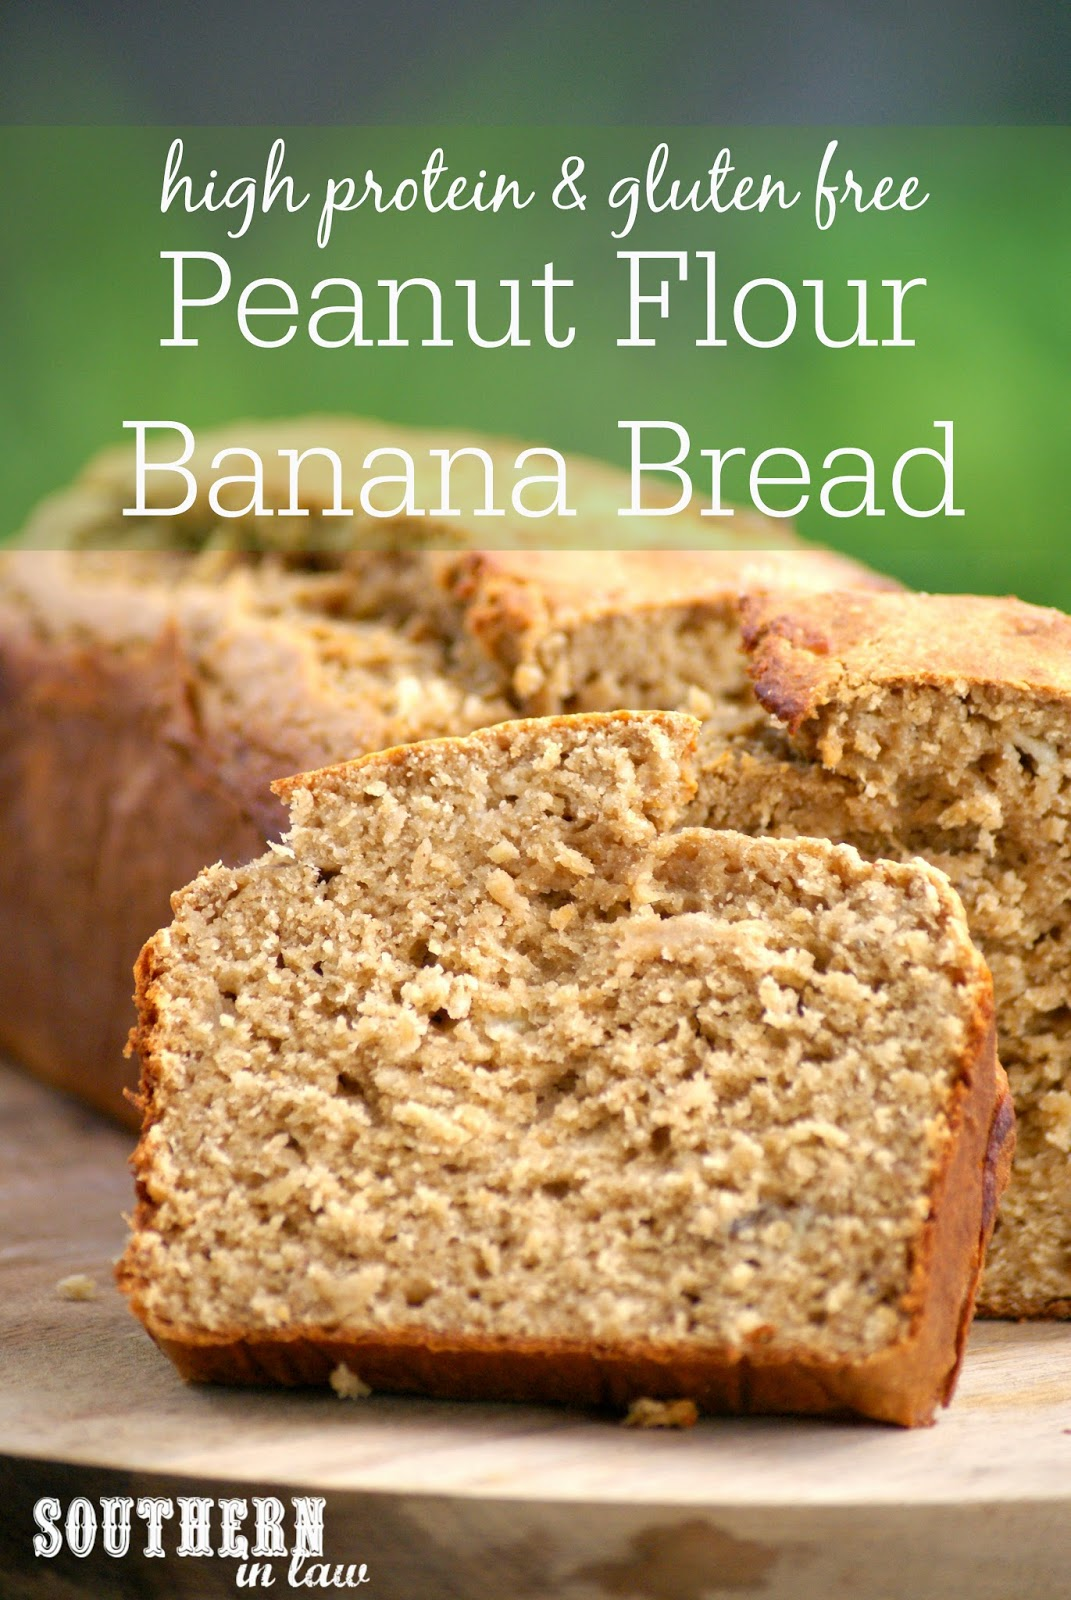 Healthy High Protein Peanut Butter Banana Bread Recipe - low fat, gluten free, healthy, high protein, sugar free, freezable recipe, freezer recipe